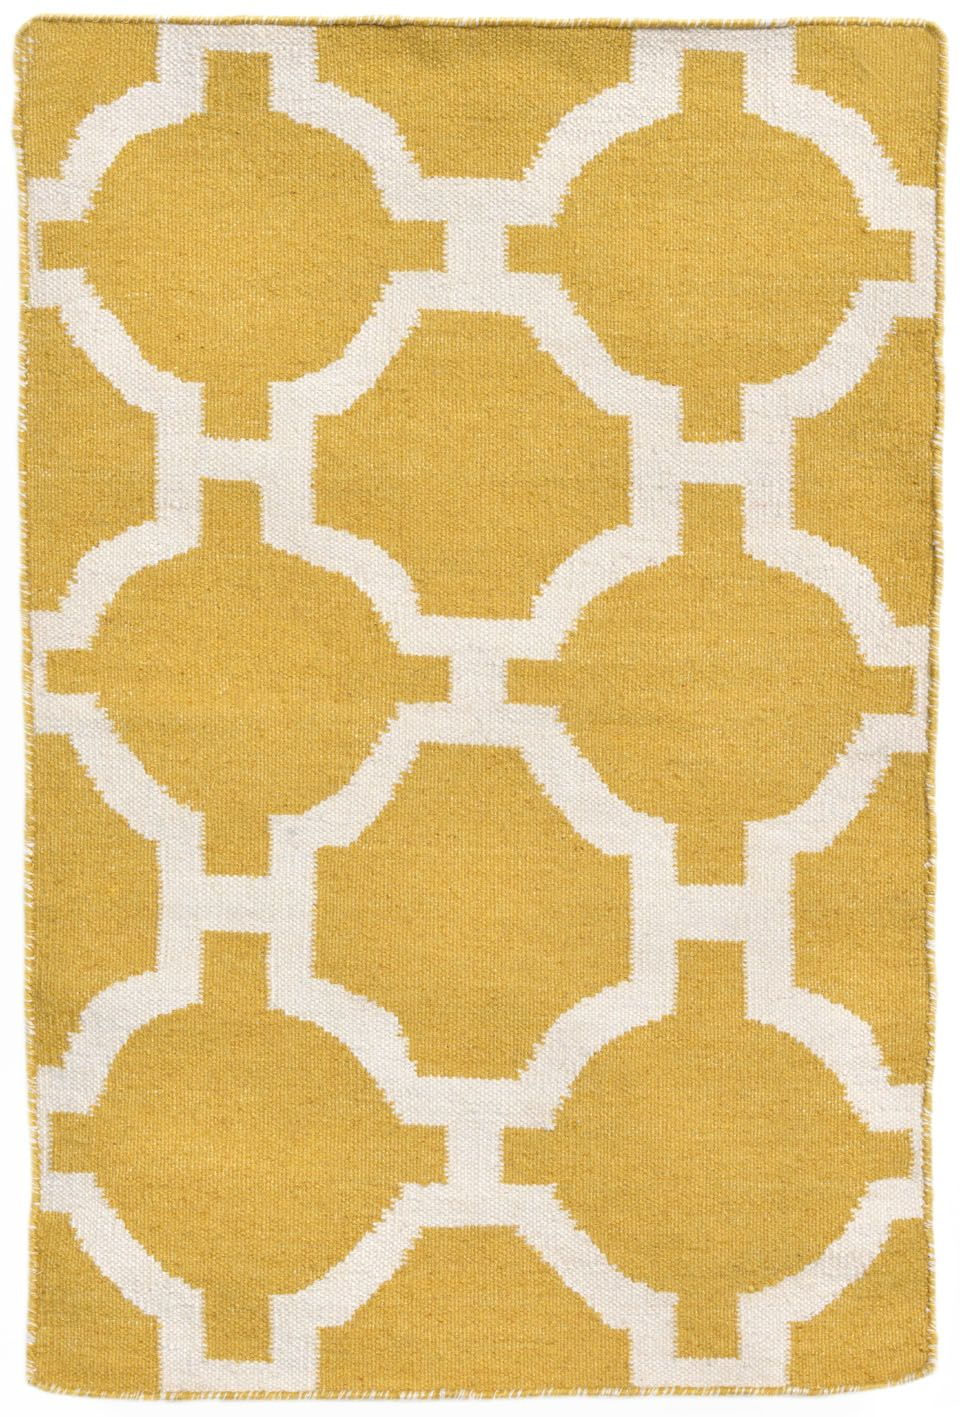 Your Source For The Finest Rugs Home Decor Fashion Accessories Area Rugs Rugs Yellow Tile